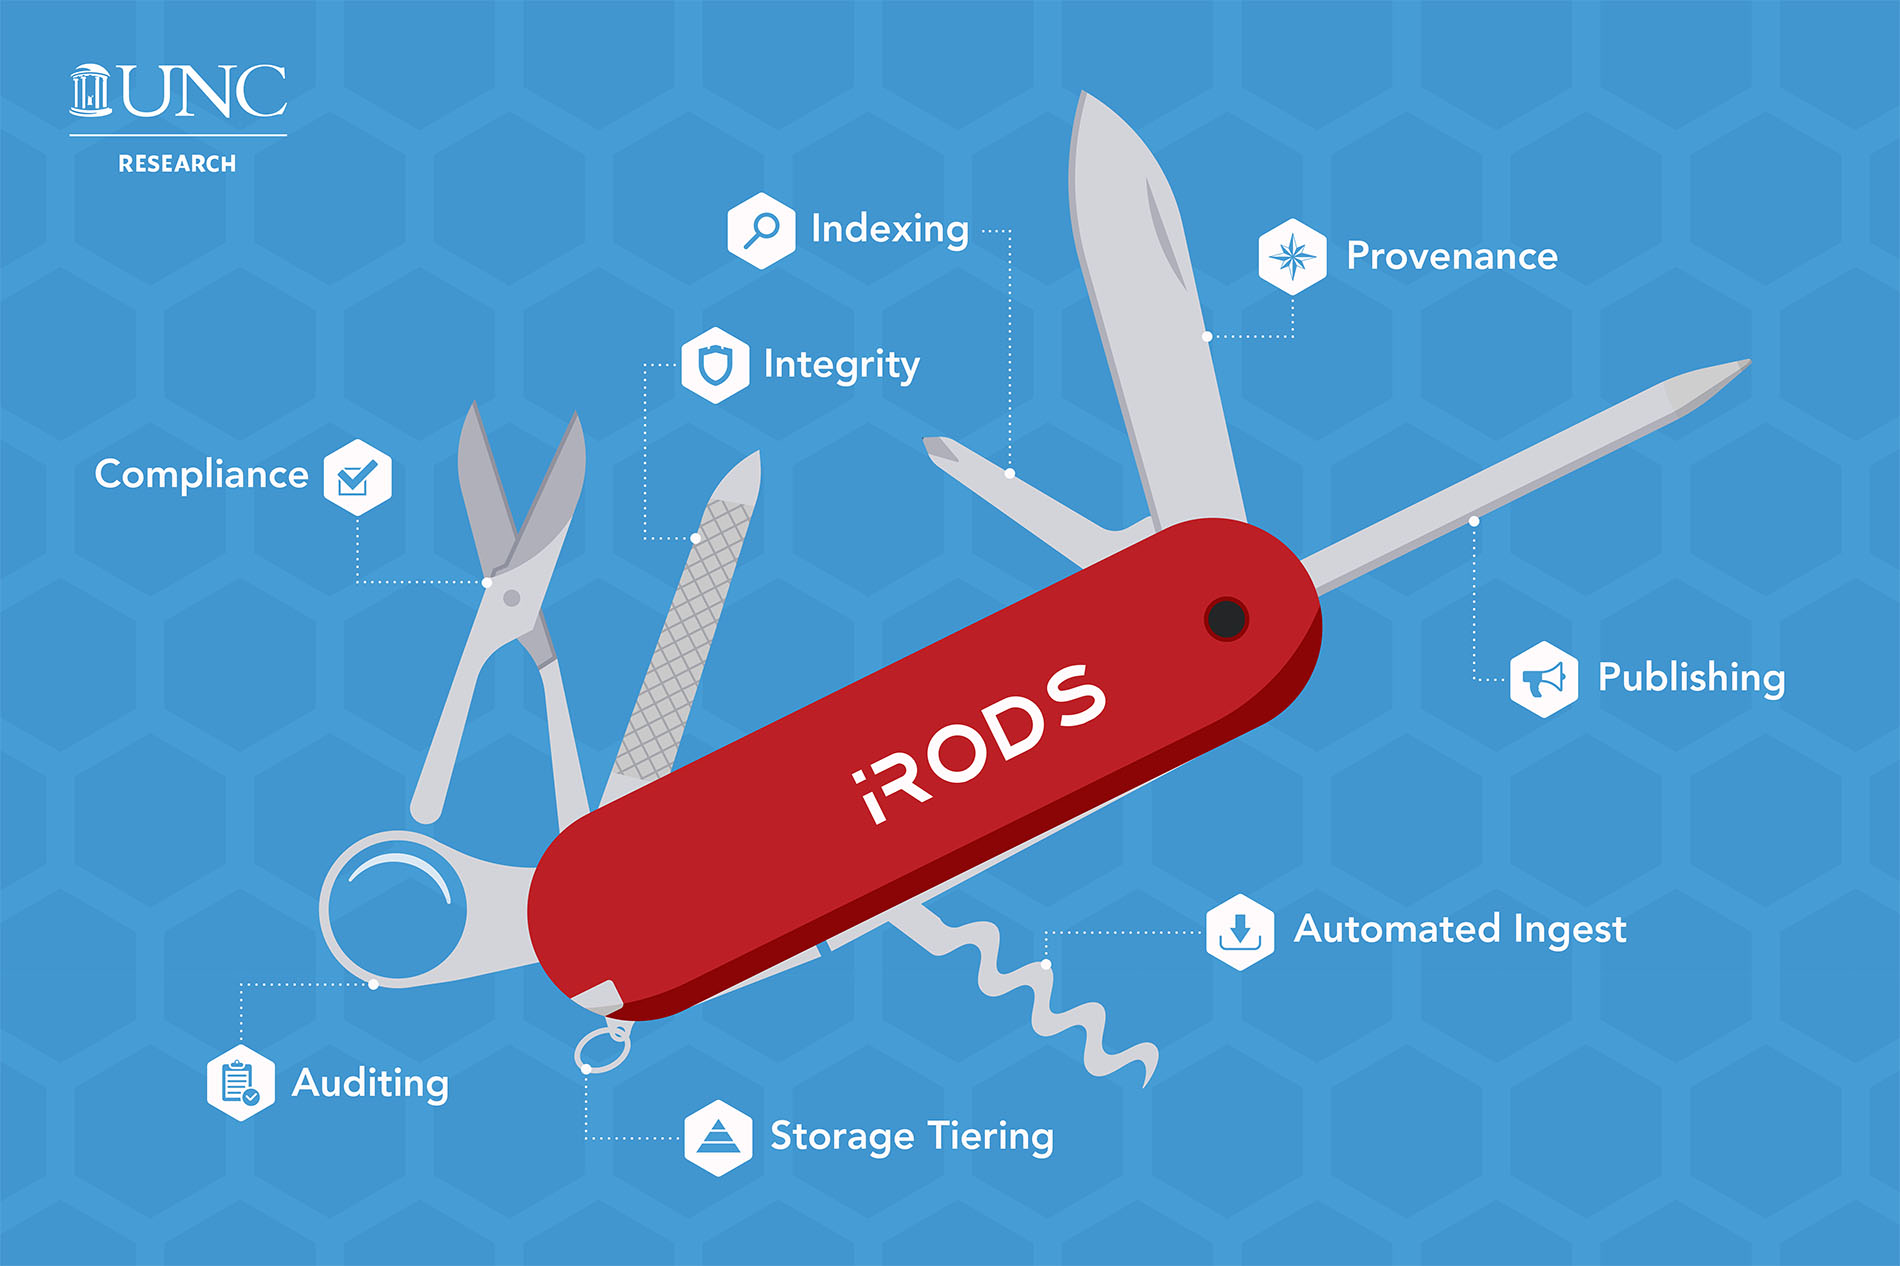 a graphic of a Swiss army knife; the large blade is provenance, the small blade is indexing, the nail file is integrity, the scissors are compliance, the magnifying class is auditing, the keychain is storage tiering, the corkscrew is automated ingest, and the pen is publishing